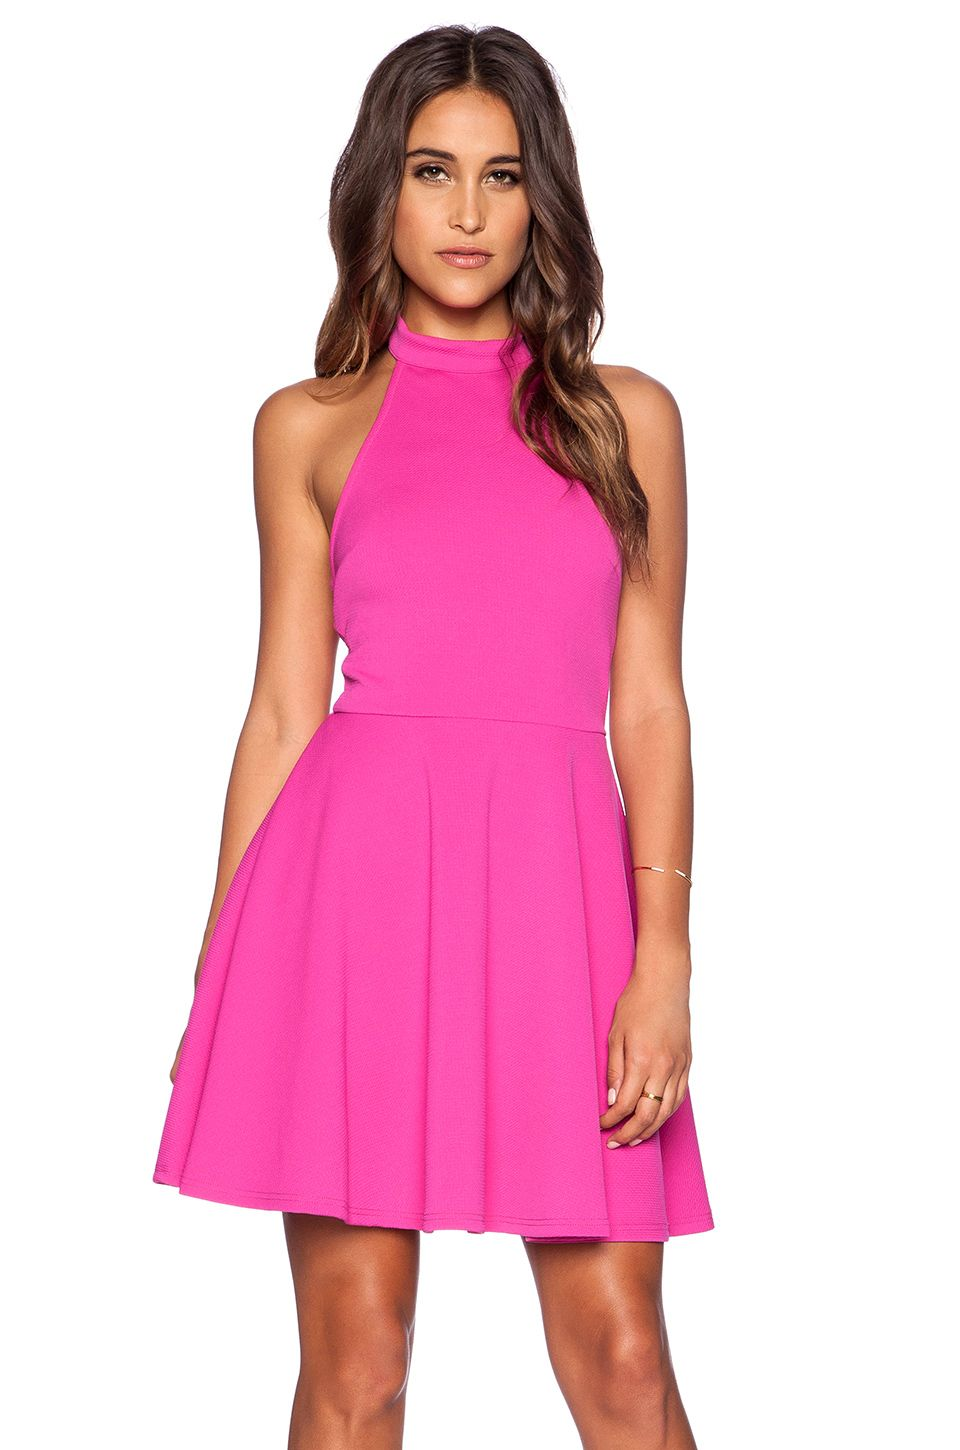 Wedding day guest dresses  REVOLVEclothing  Dresses  Pinterest  Wedding guest dresses